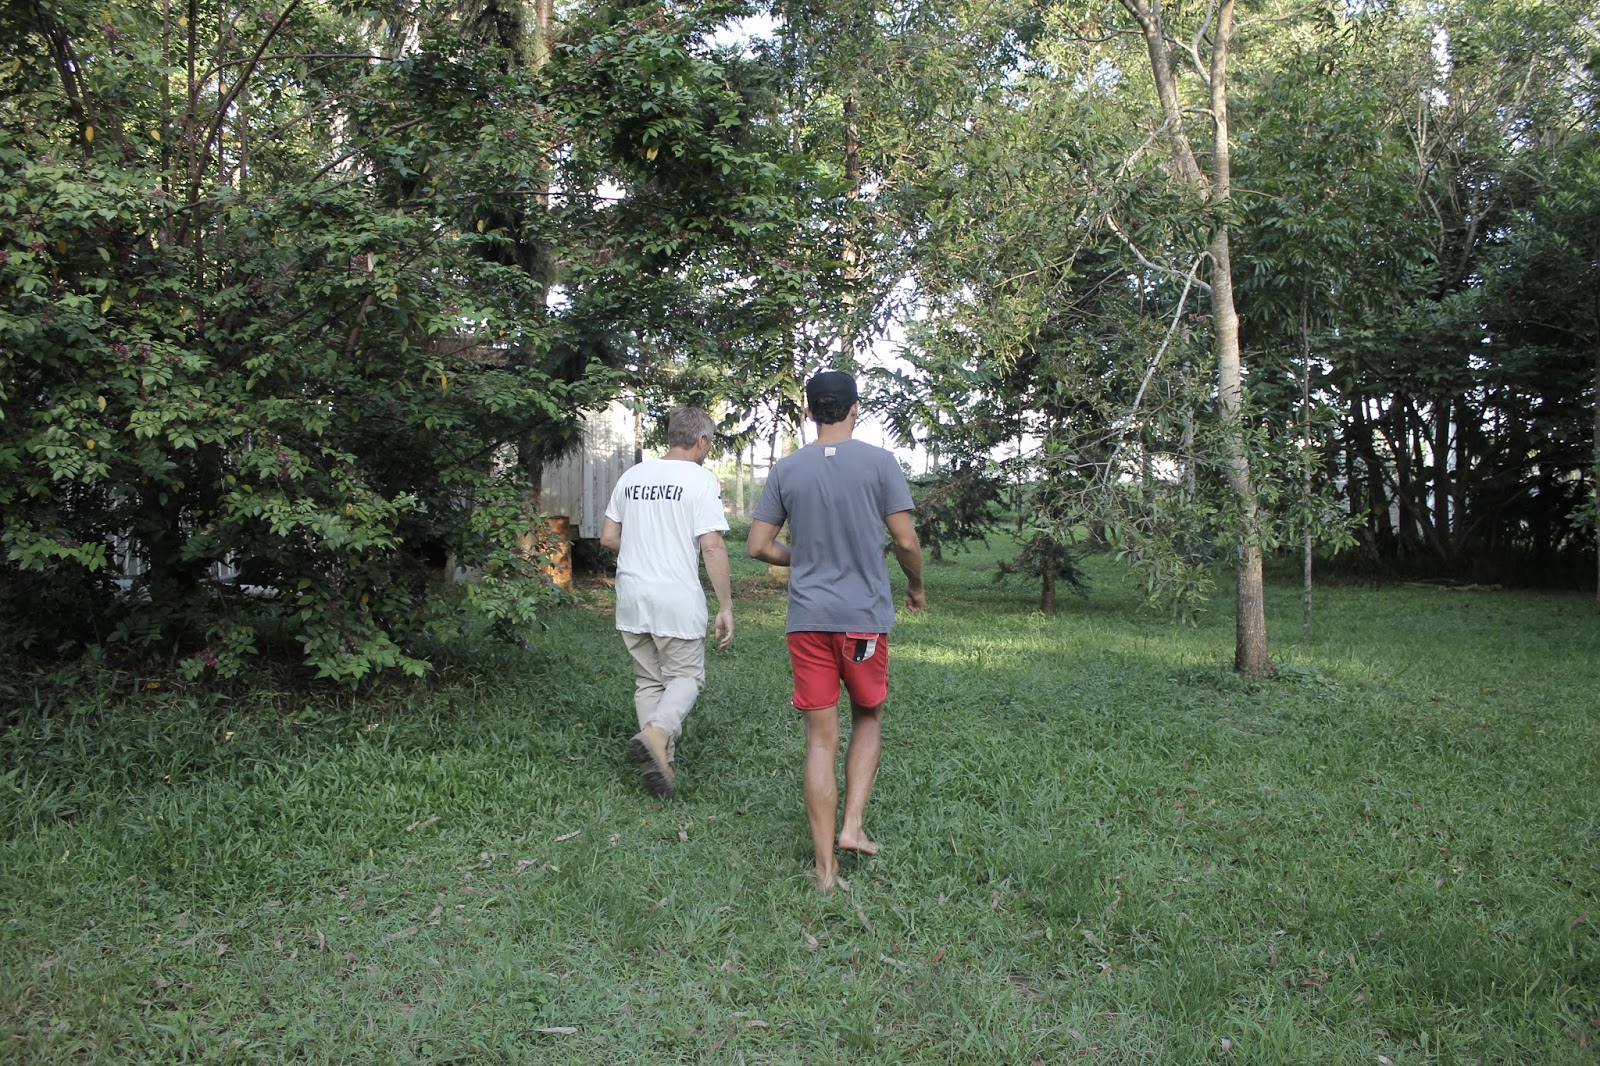 16-03-2016-australia-siebert-surfboards-05